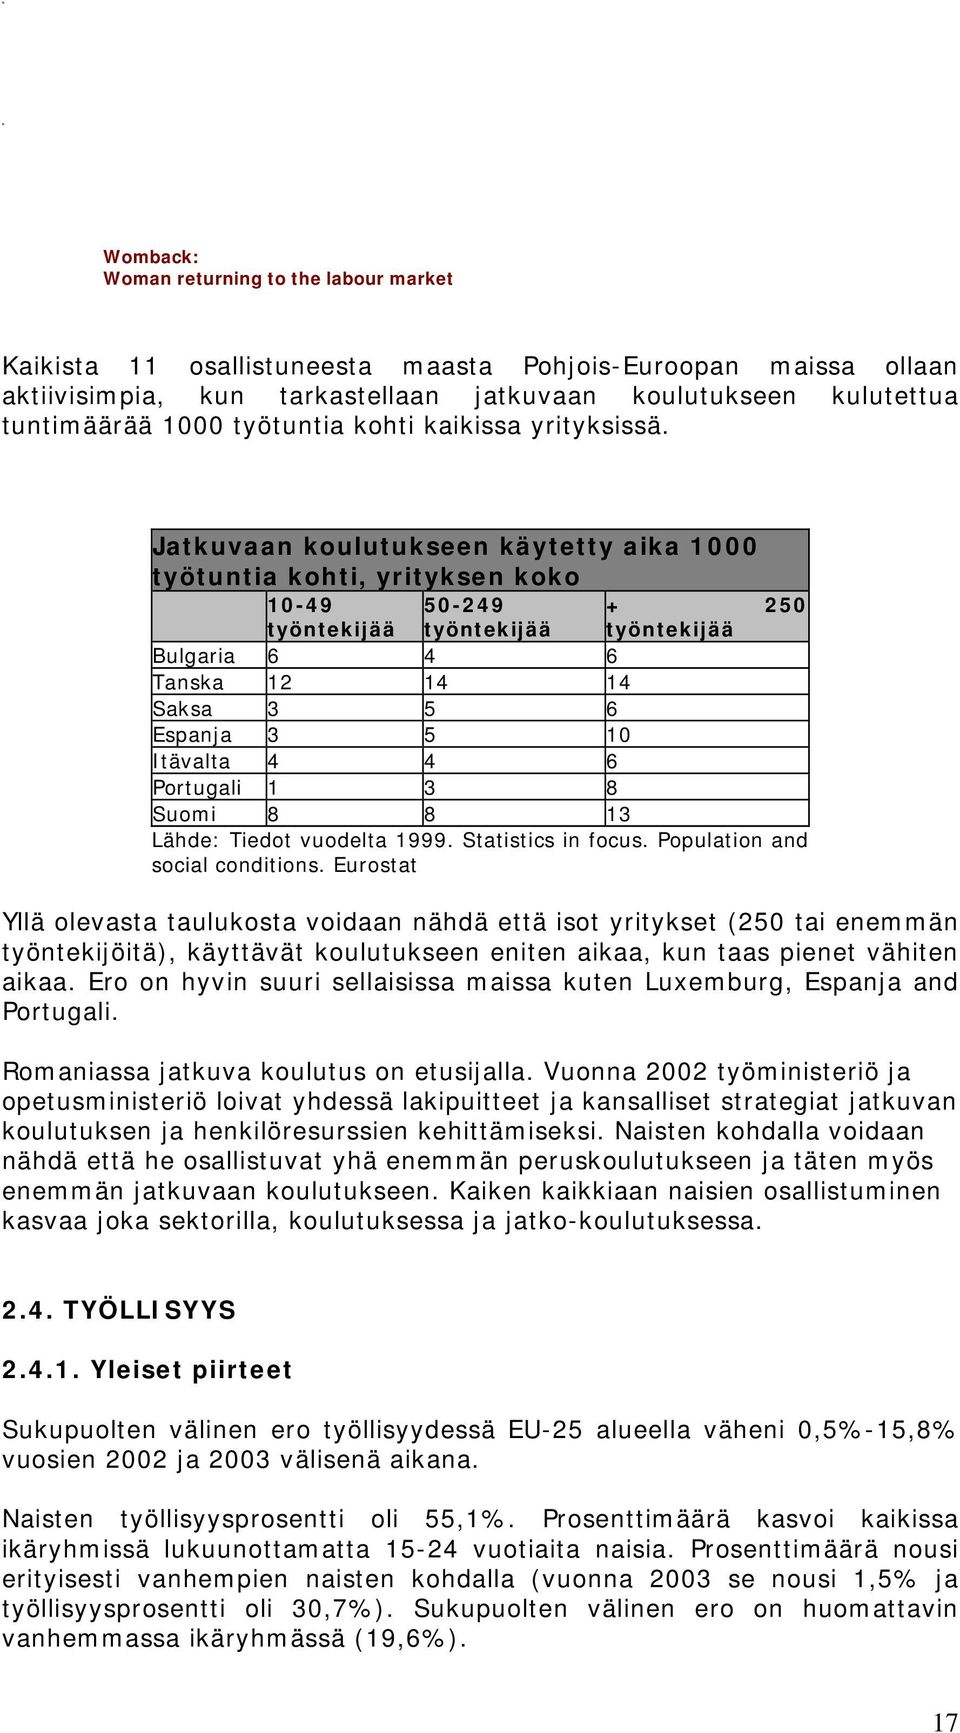 6 Portugali 1 3 8 Suomi 8 8 13 Lähde: Tiedot vuodelta 1999. Statistics in focus. Population and social conditions.